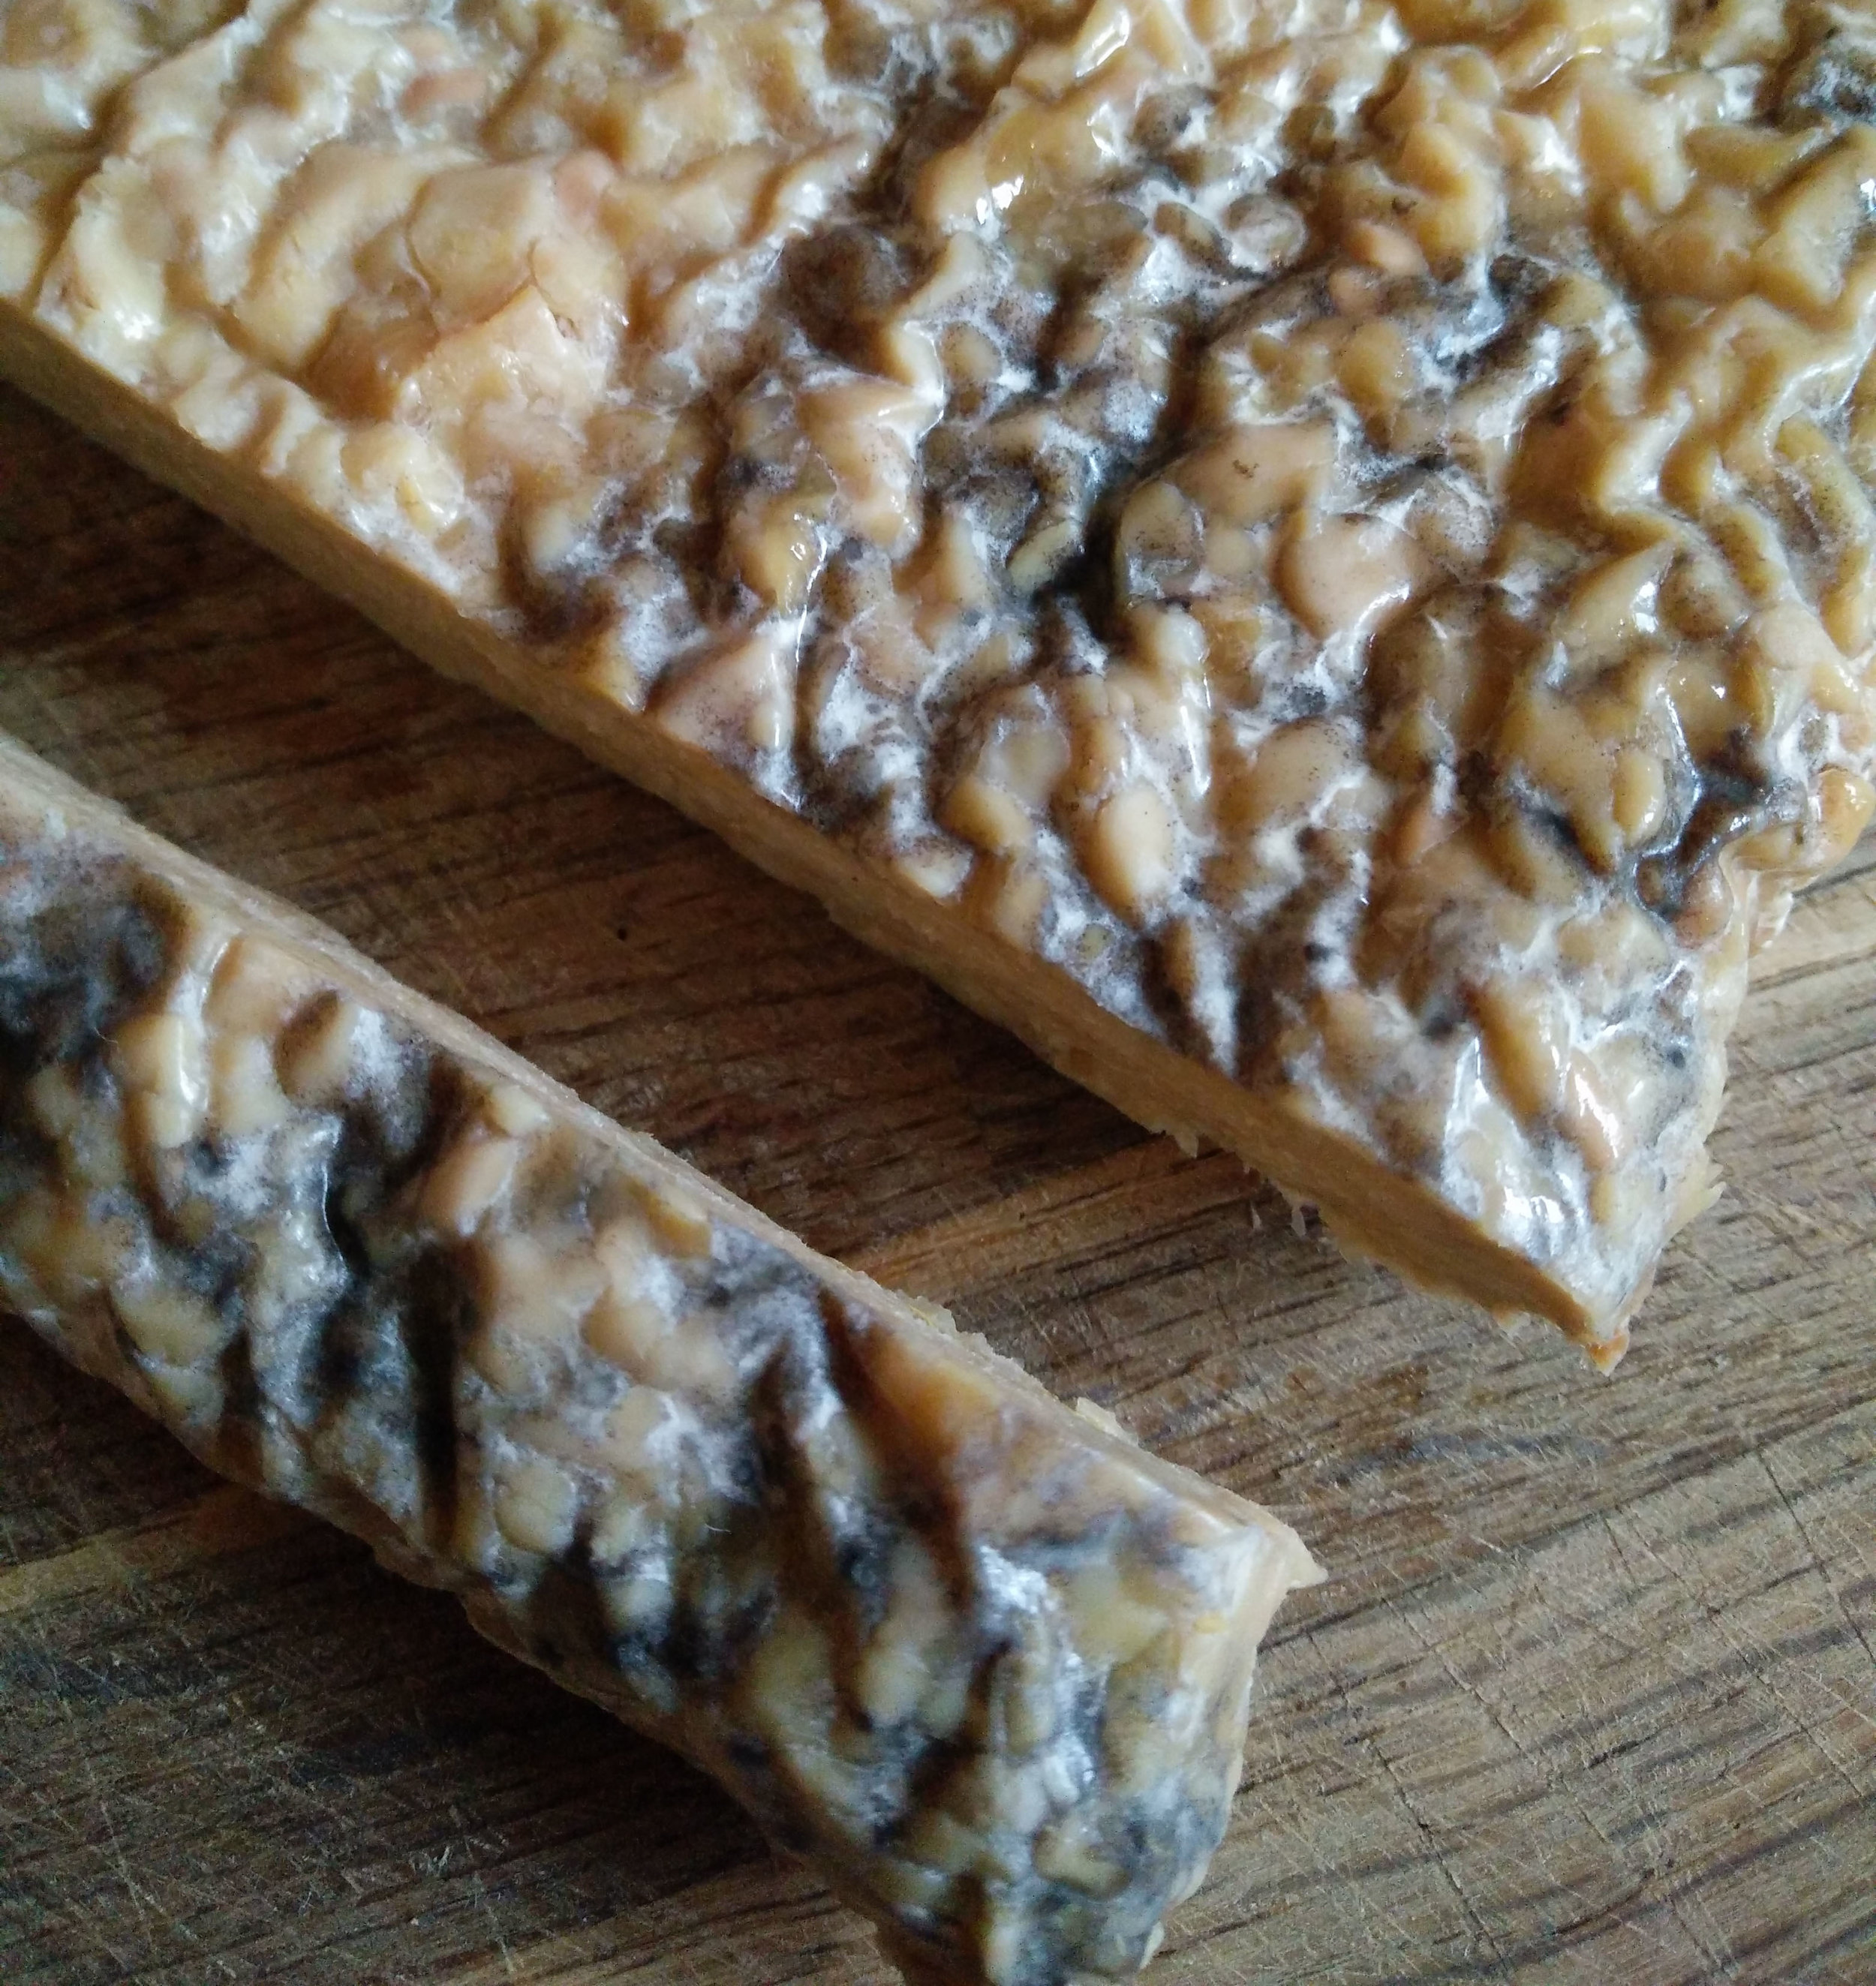 Why has my tempeh got black spots on it? - We get asked this question a lot, while most of the products we send out has the pale brown colour that you are probably used to sometimes grey patches and black spots can sometimes form. These are an entirely natural part of the tempeh lifecycle and do not indicate spoilage. Similarly the vacuum packing process can give these a slight greenish grey colour to the Tempeh.